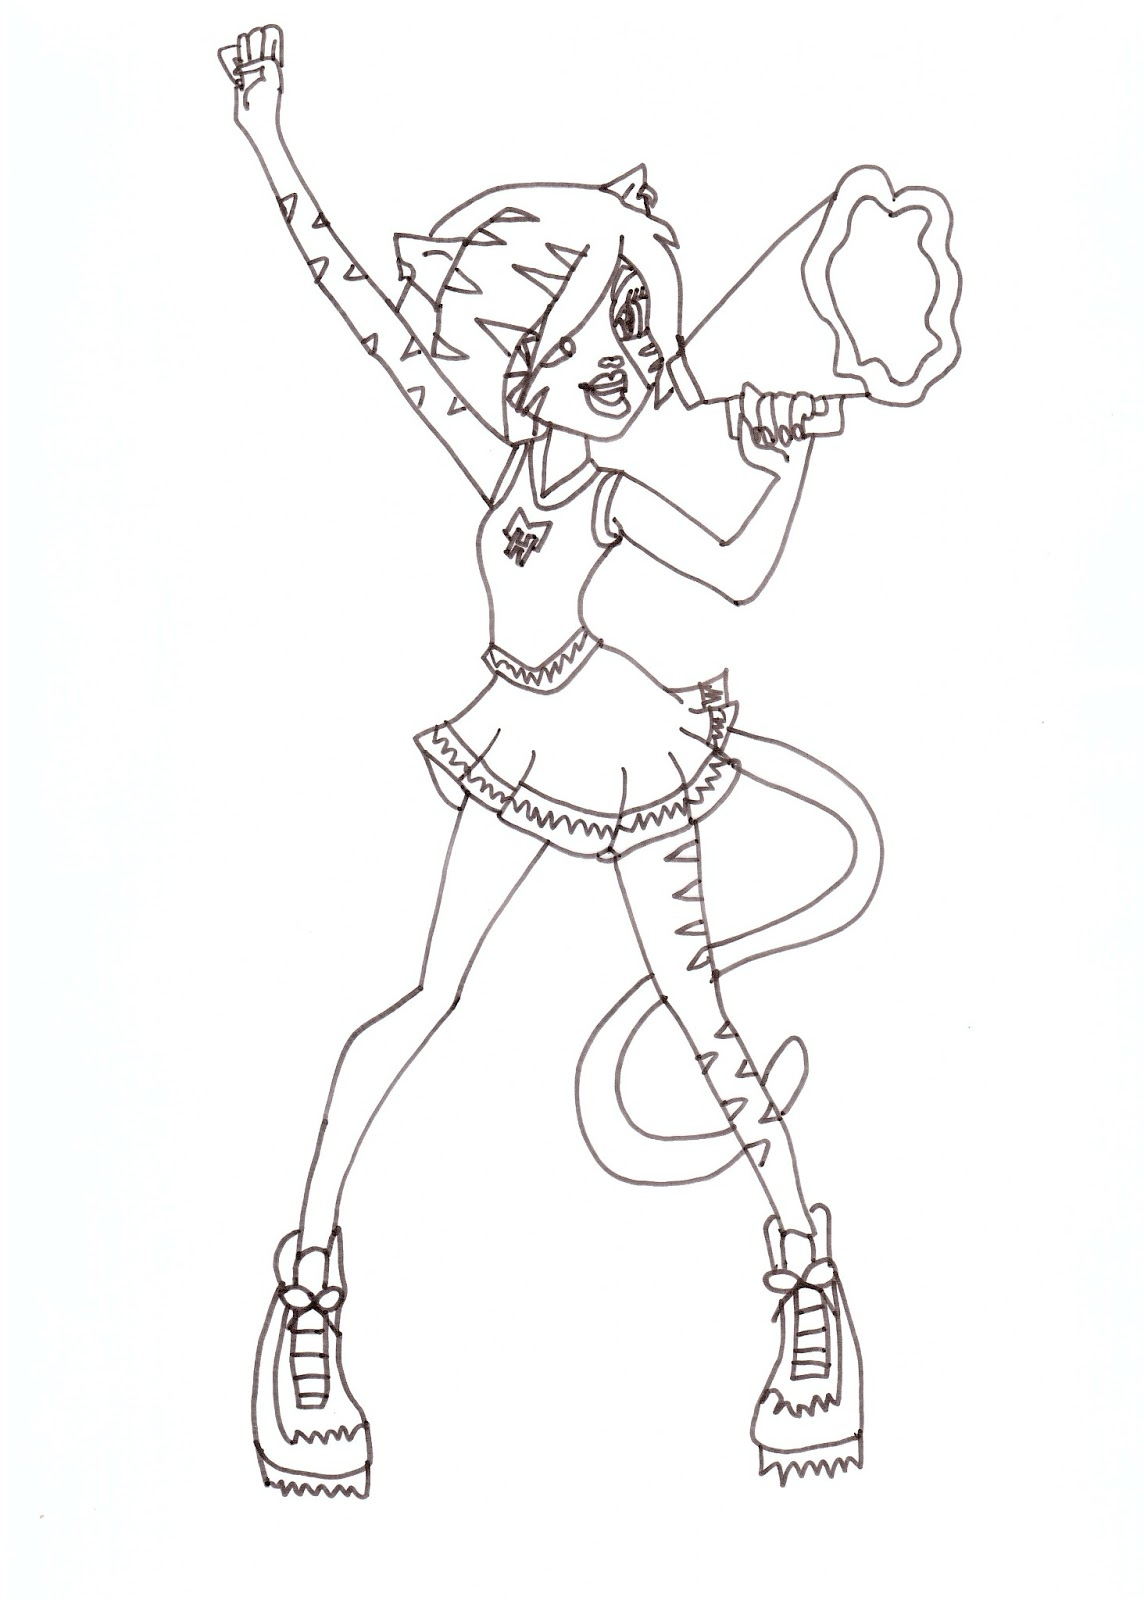 Monster High Printable Coloring Pages Abbey Colorings Download Of Exquisite Monster High Printables Coloring Pages Free Gallery